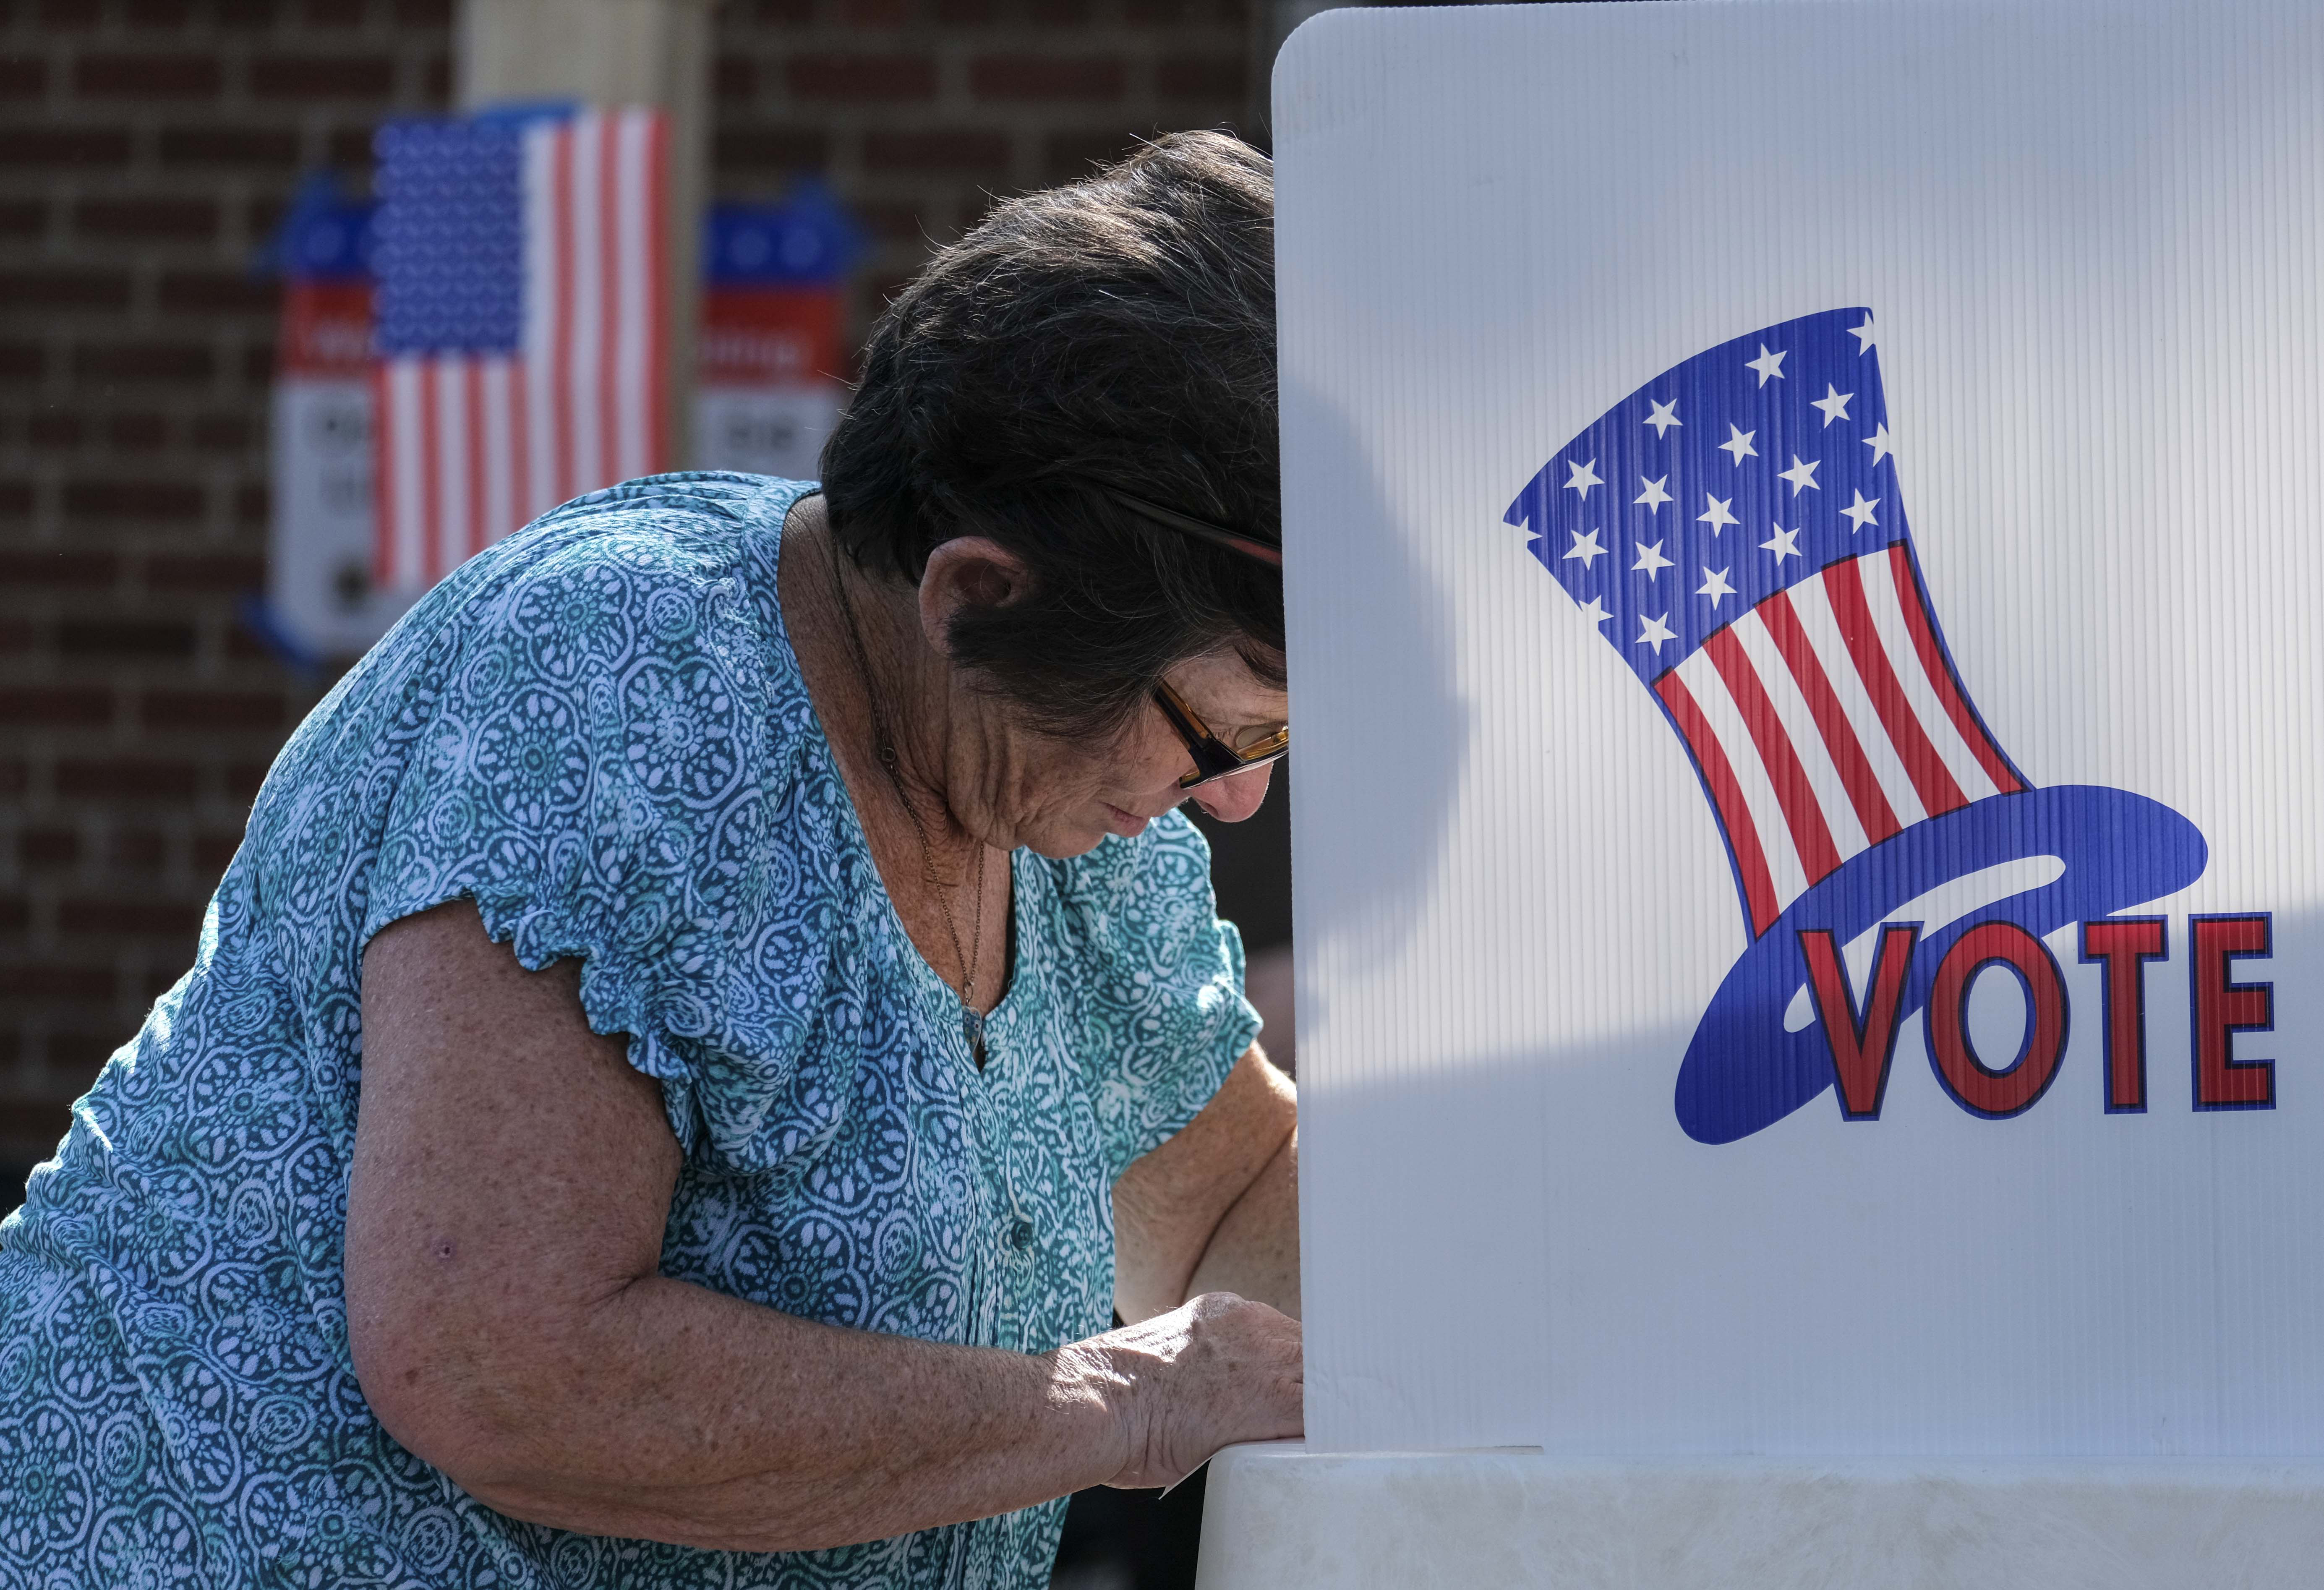 A voter fills out her ballot at a polling station in Los Angeles, California, the United States, on Nov. 6, 2016.